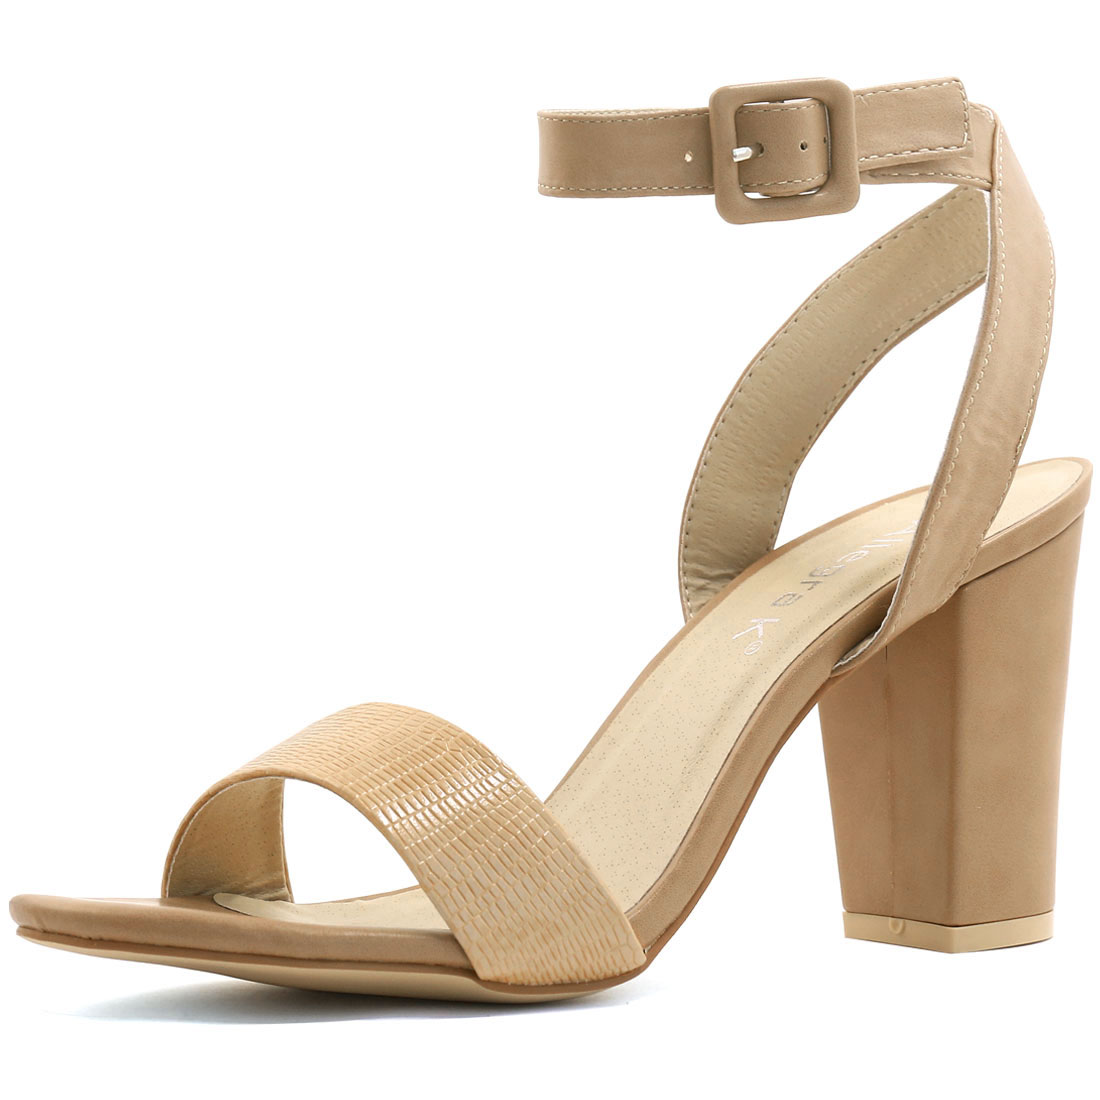 Woman Textured Vamp Chunky Heel Ankle Strap Sandals Tan US 7